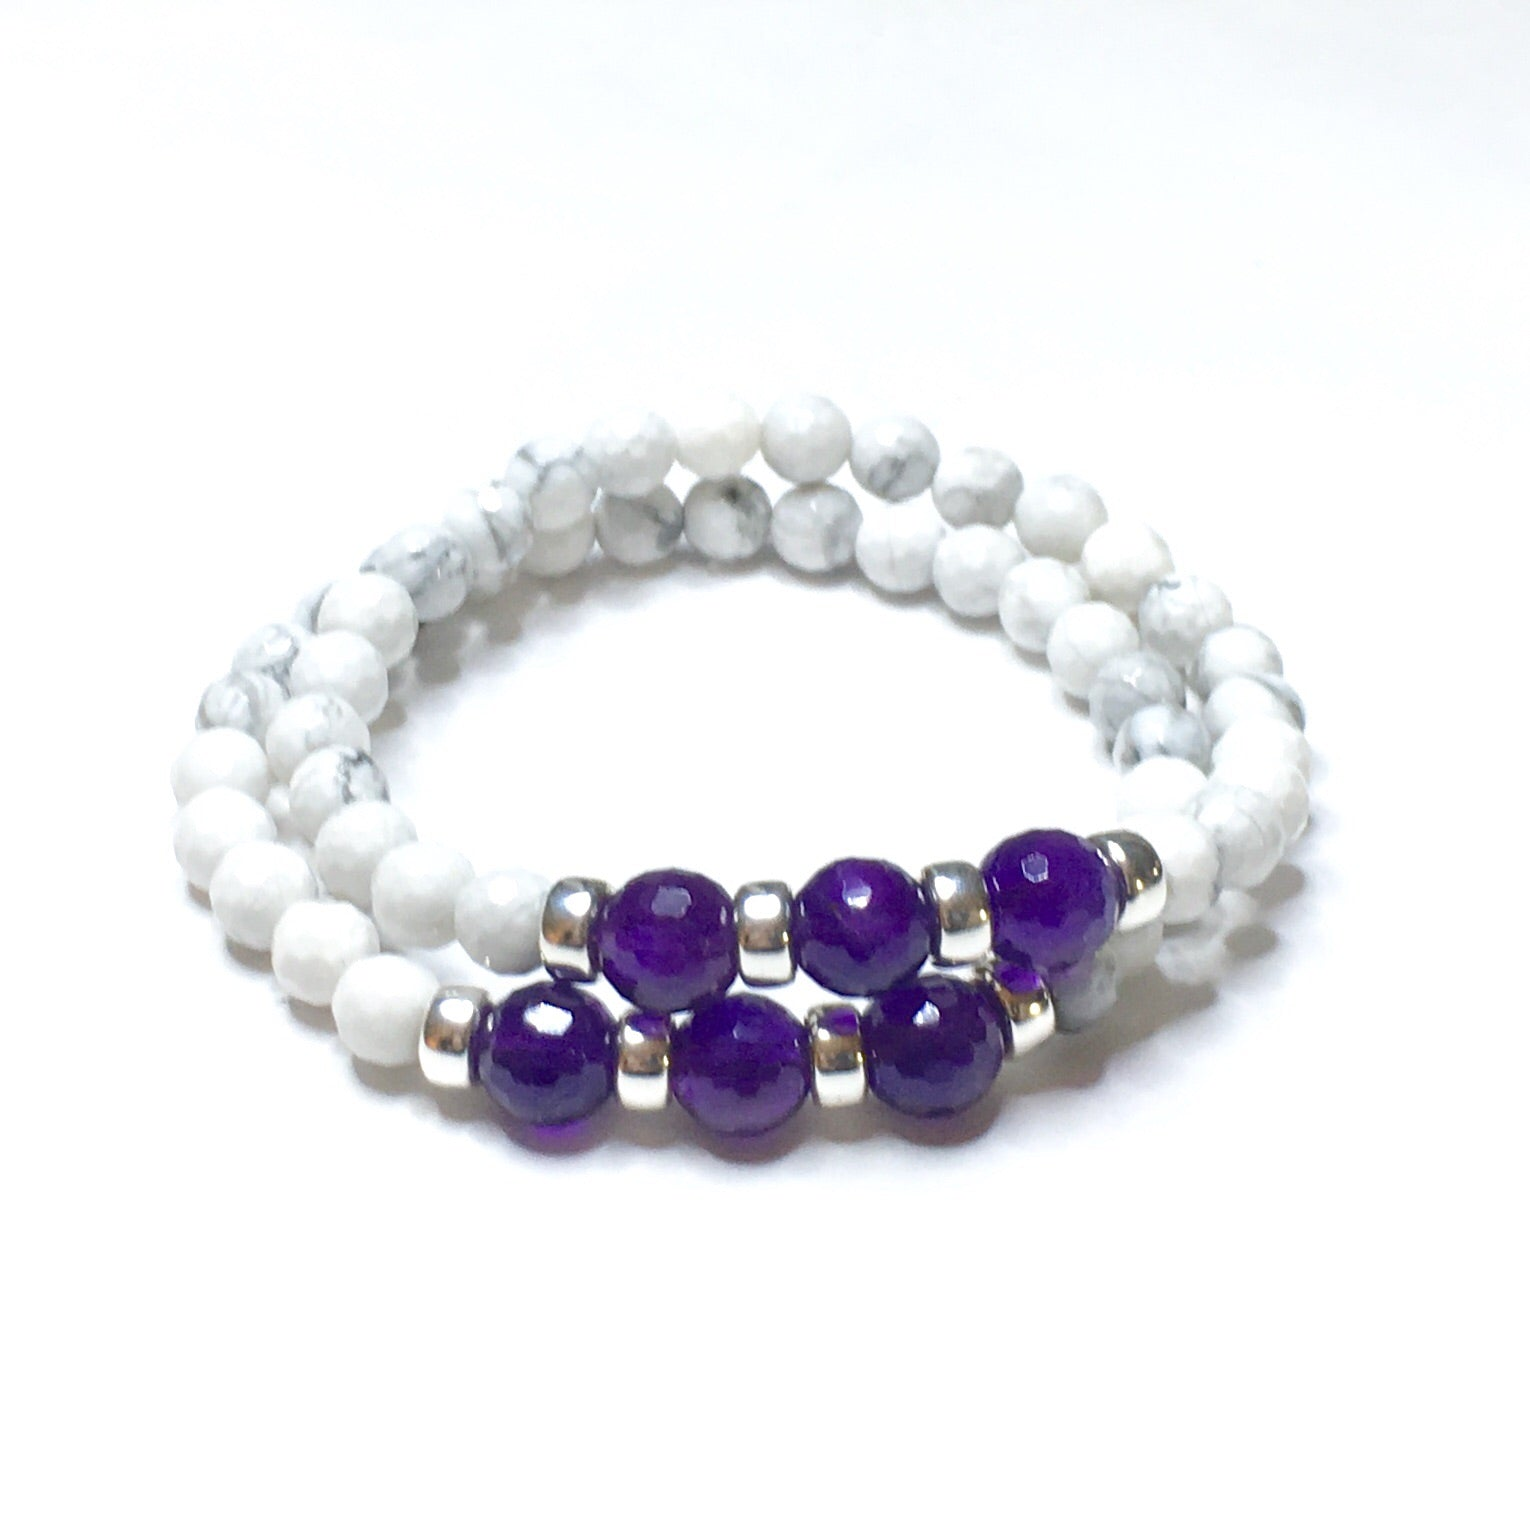 Faceted Amethyst & Faceted Howlite Bracelet - SIMPLY SOFIA